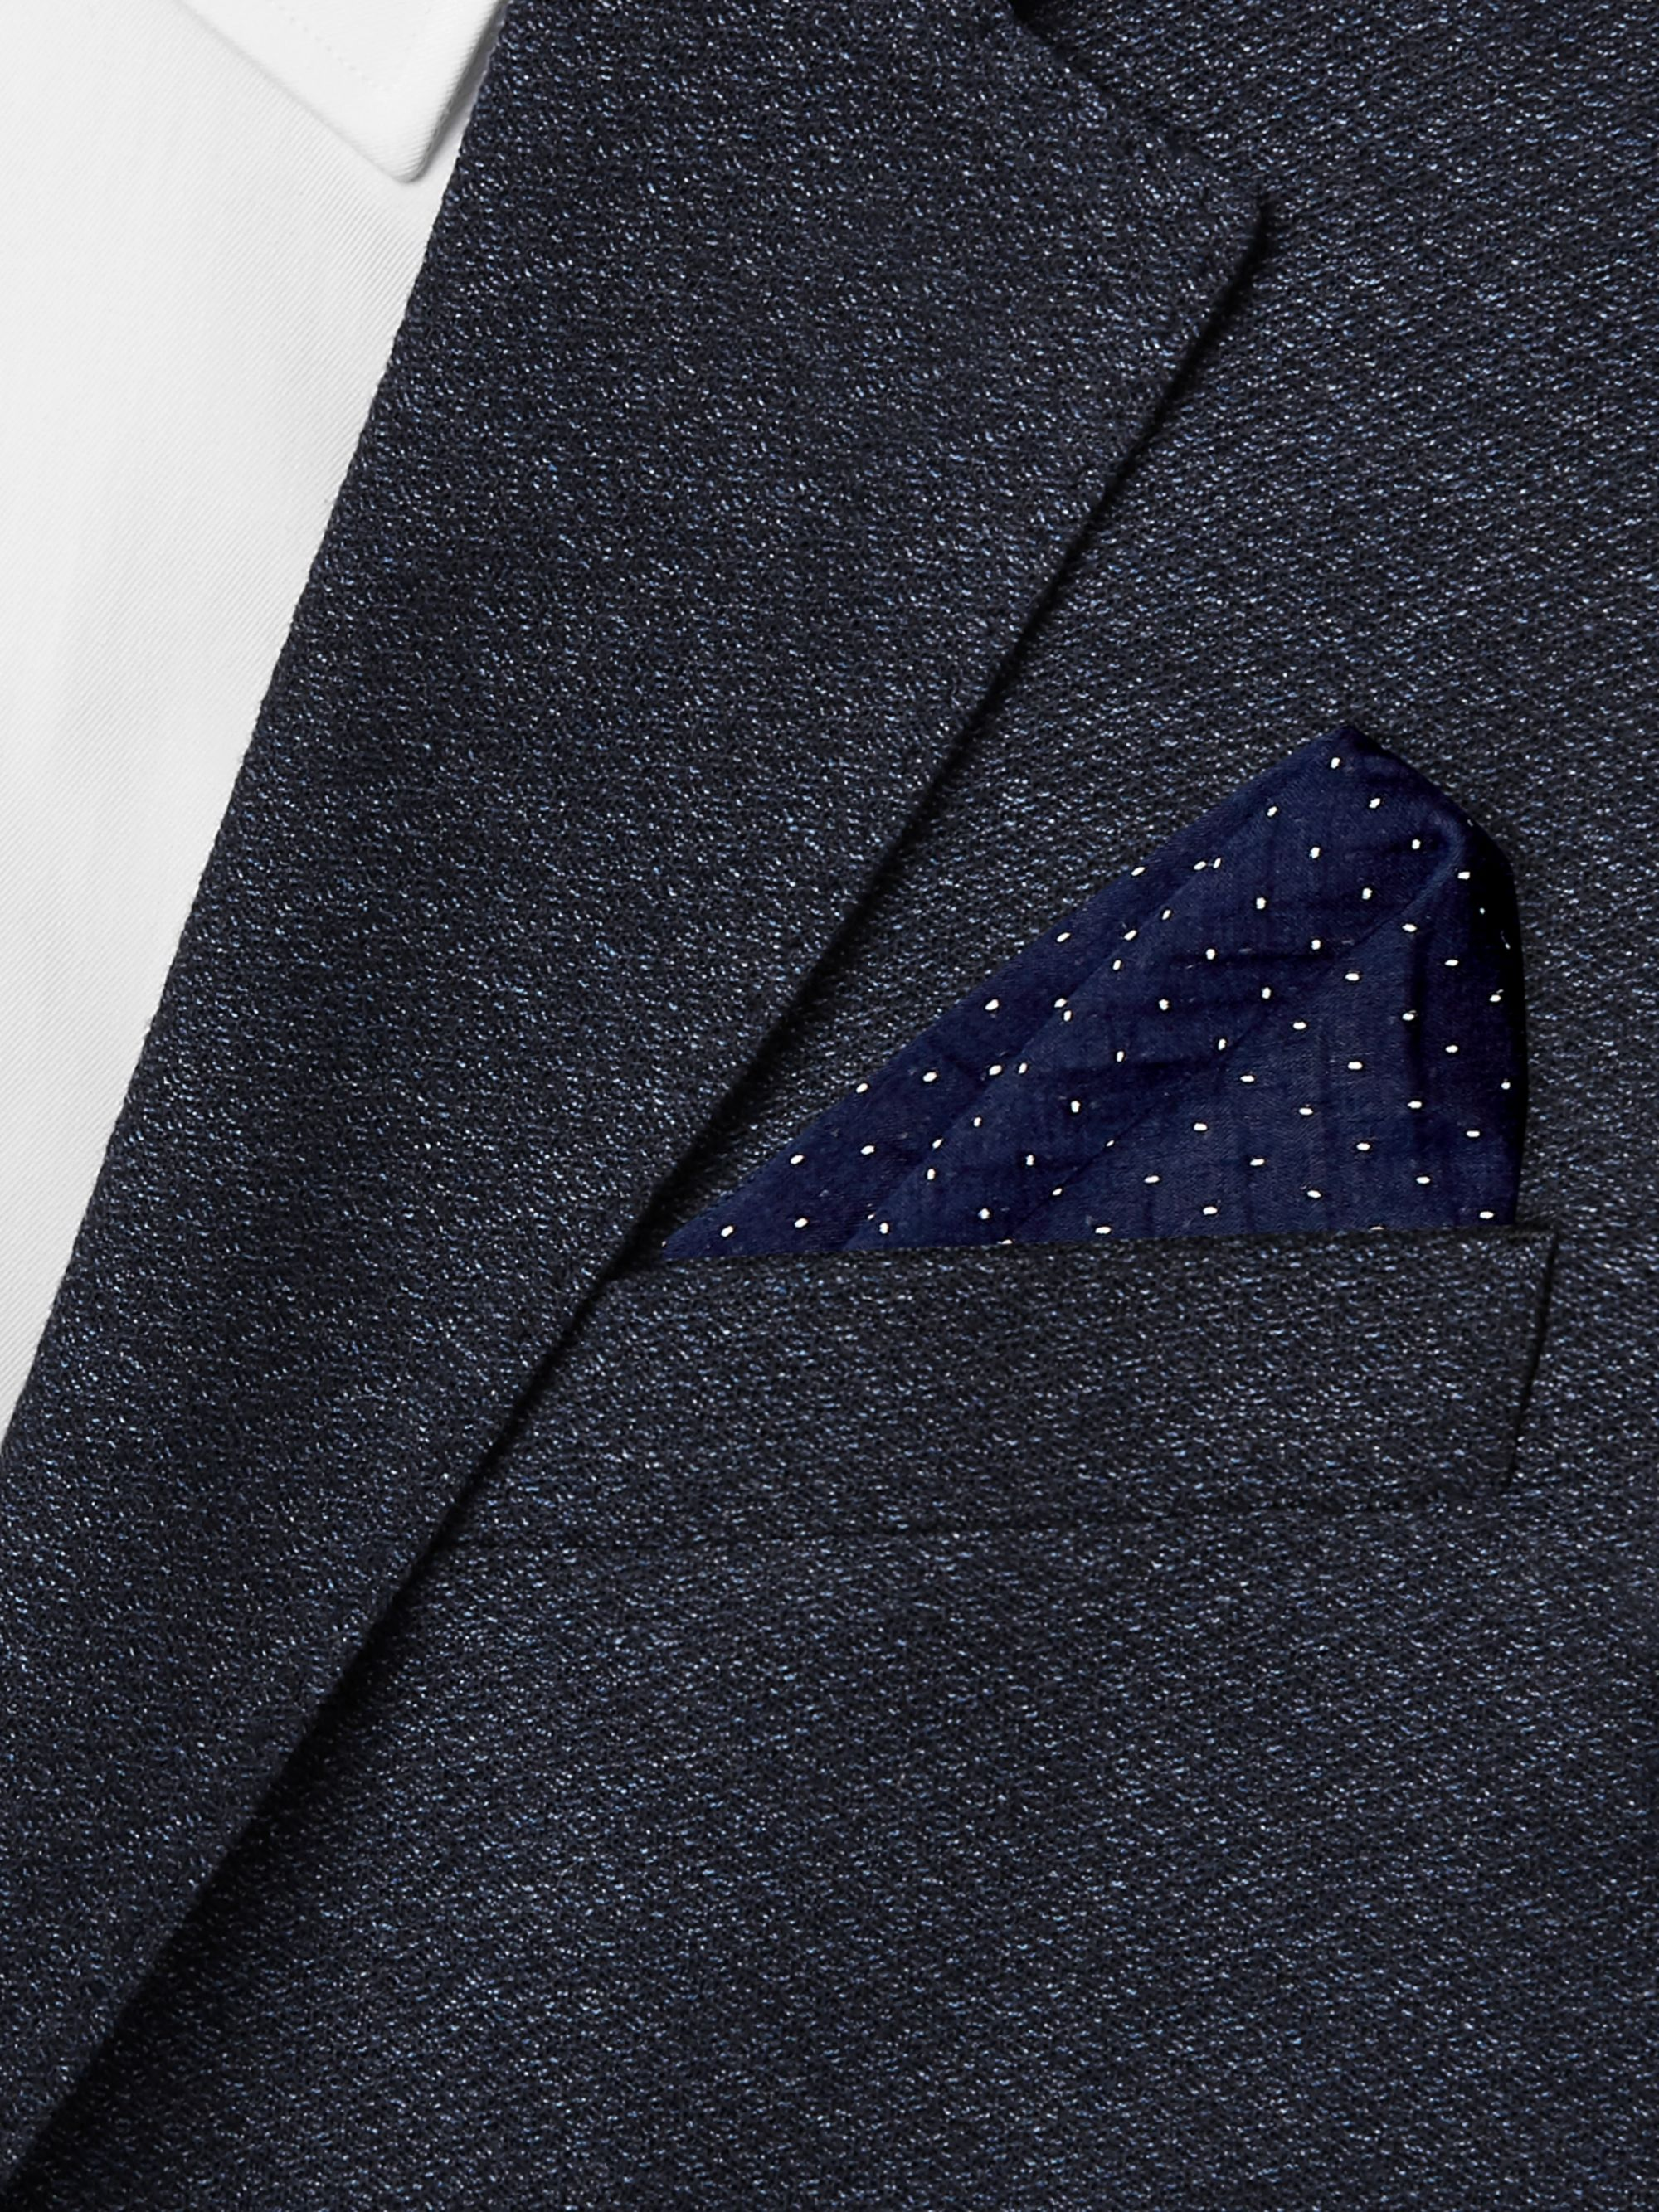 Paul Smith Embroidered Pin-Dot Cotton and Silk-Blend Voile Pocket Square